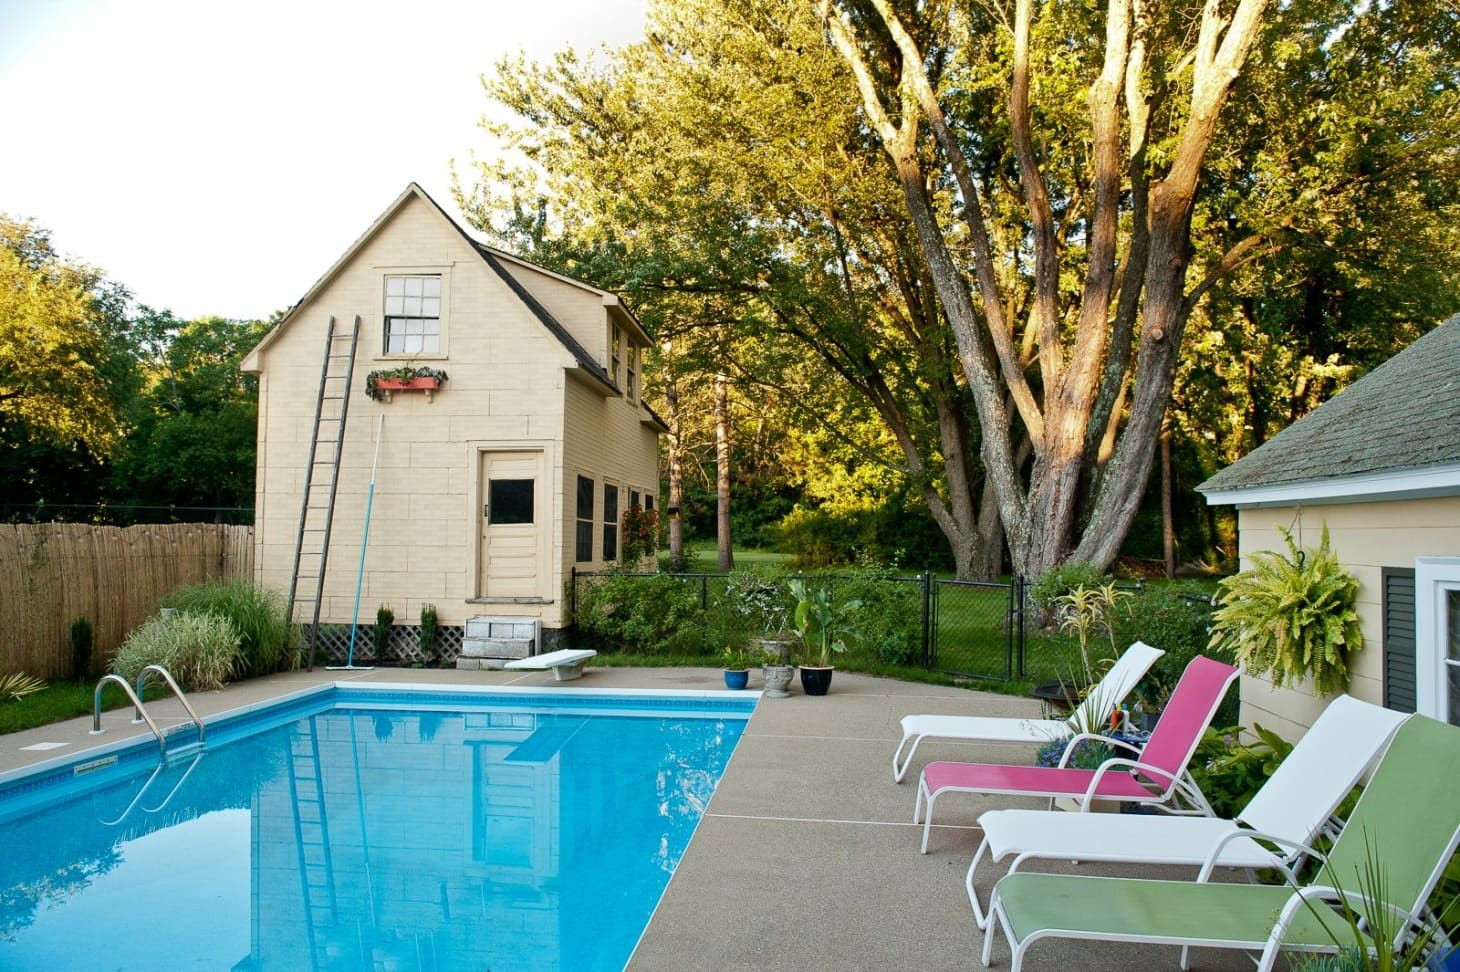 This New App Lets You Rent Your Neighbor's Pool, Starting